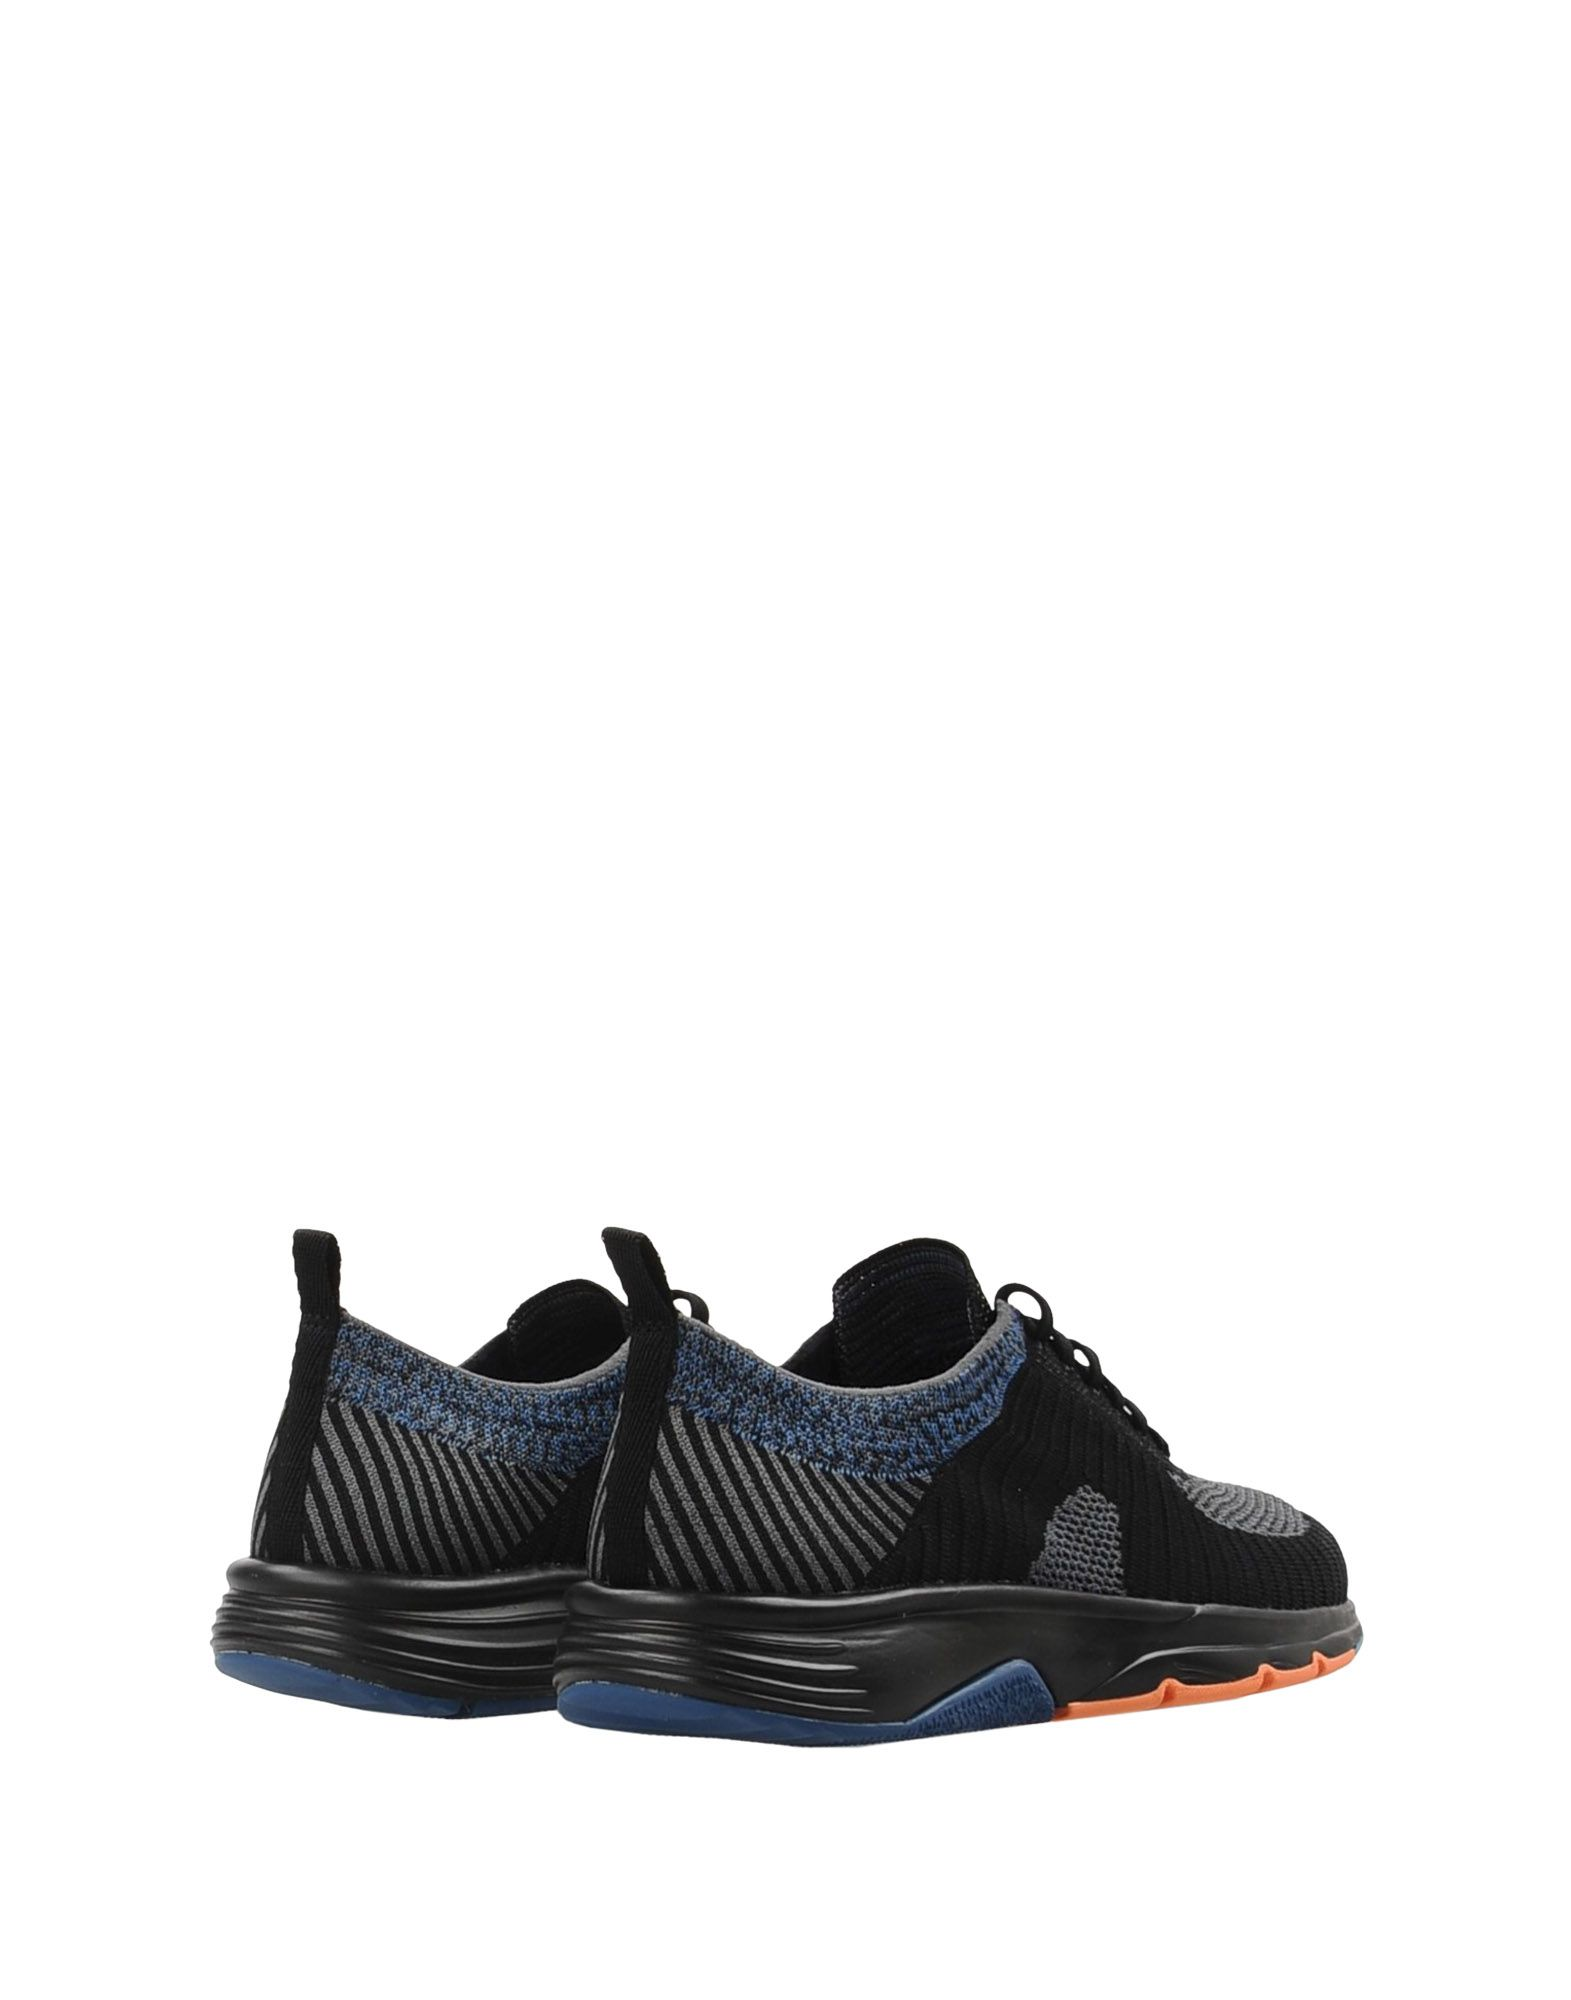 Sneakers 11449806LO Camper Drift - Donna - 11449806LO Sneakers c1051a